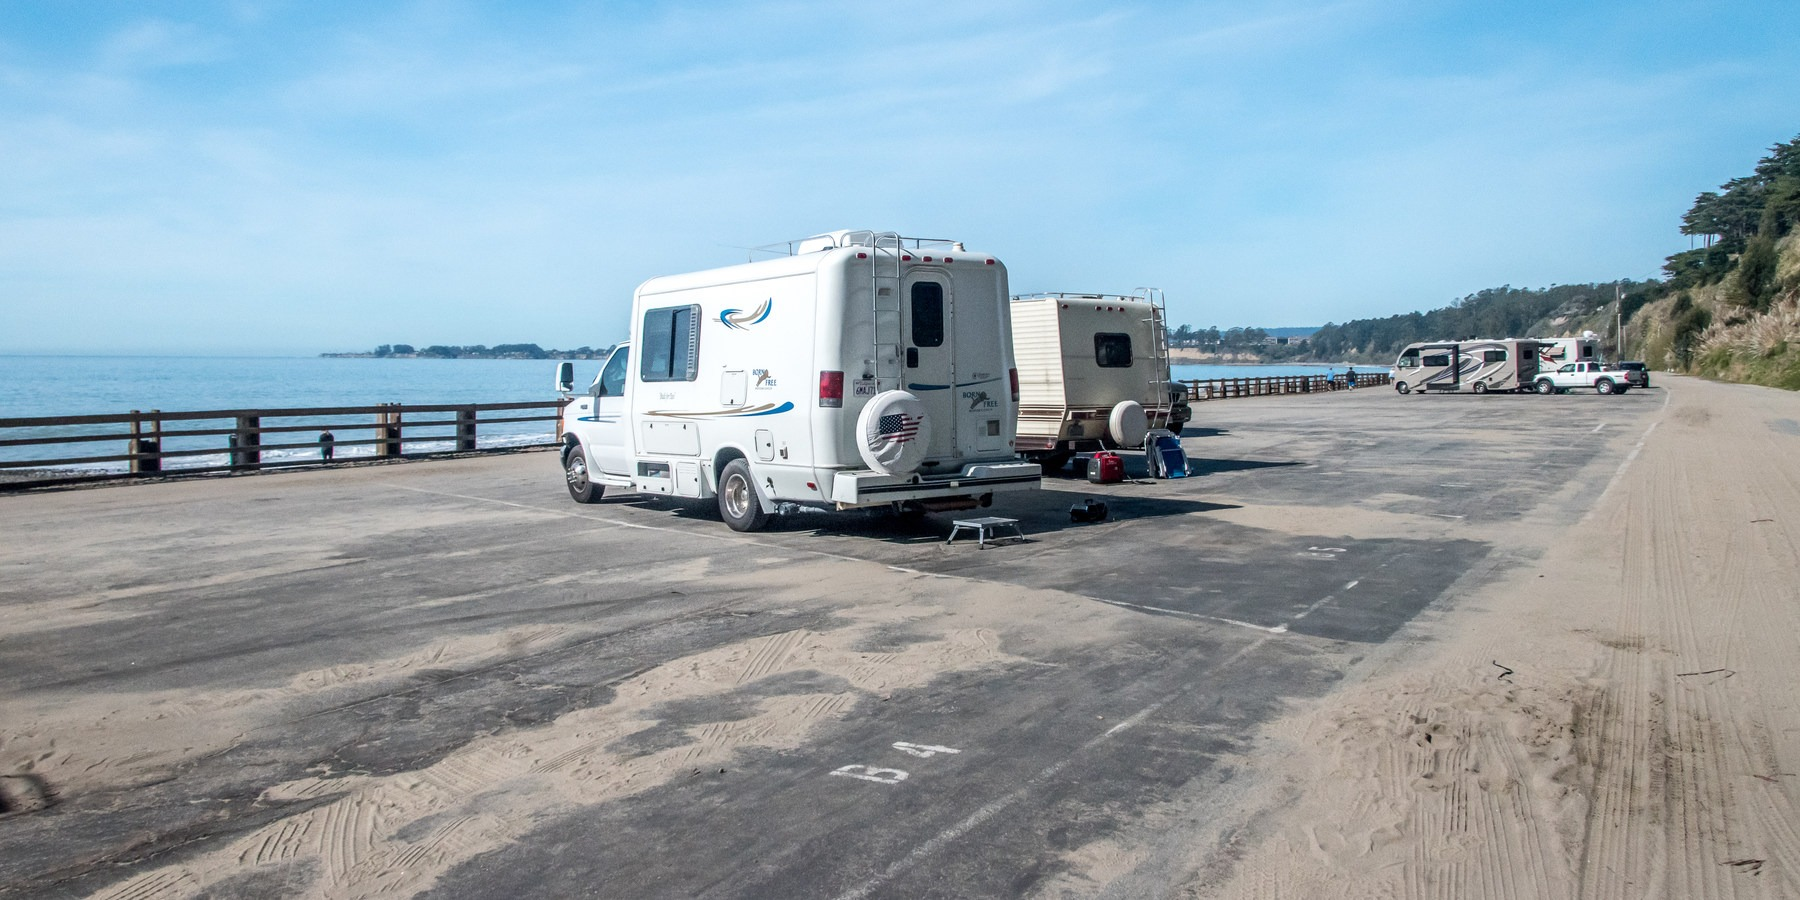 Seacliff State Beach Campsite Photos